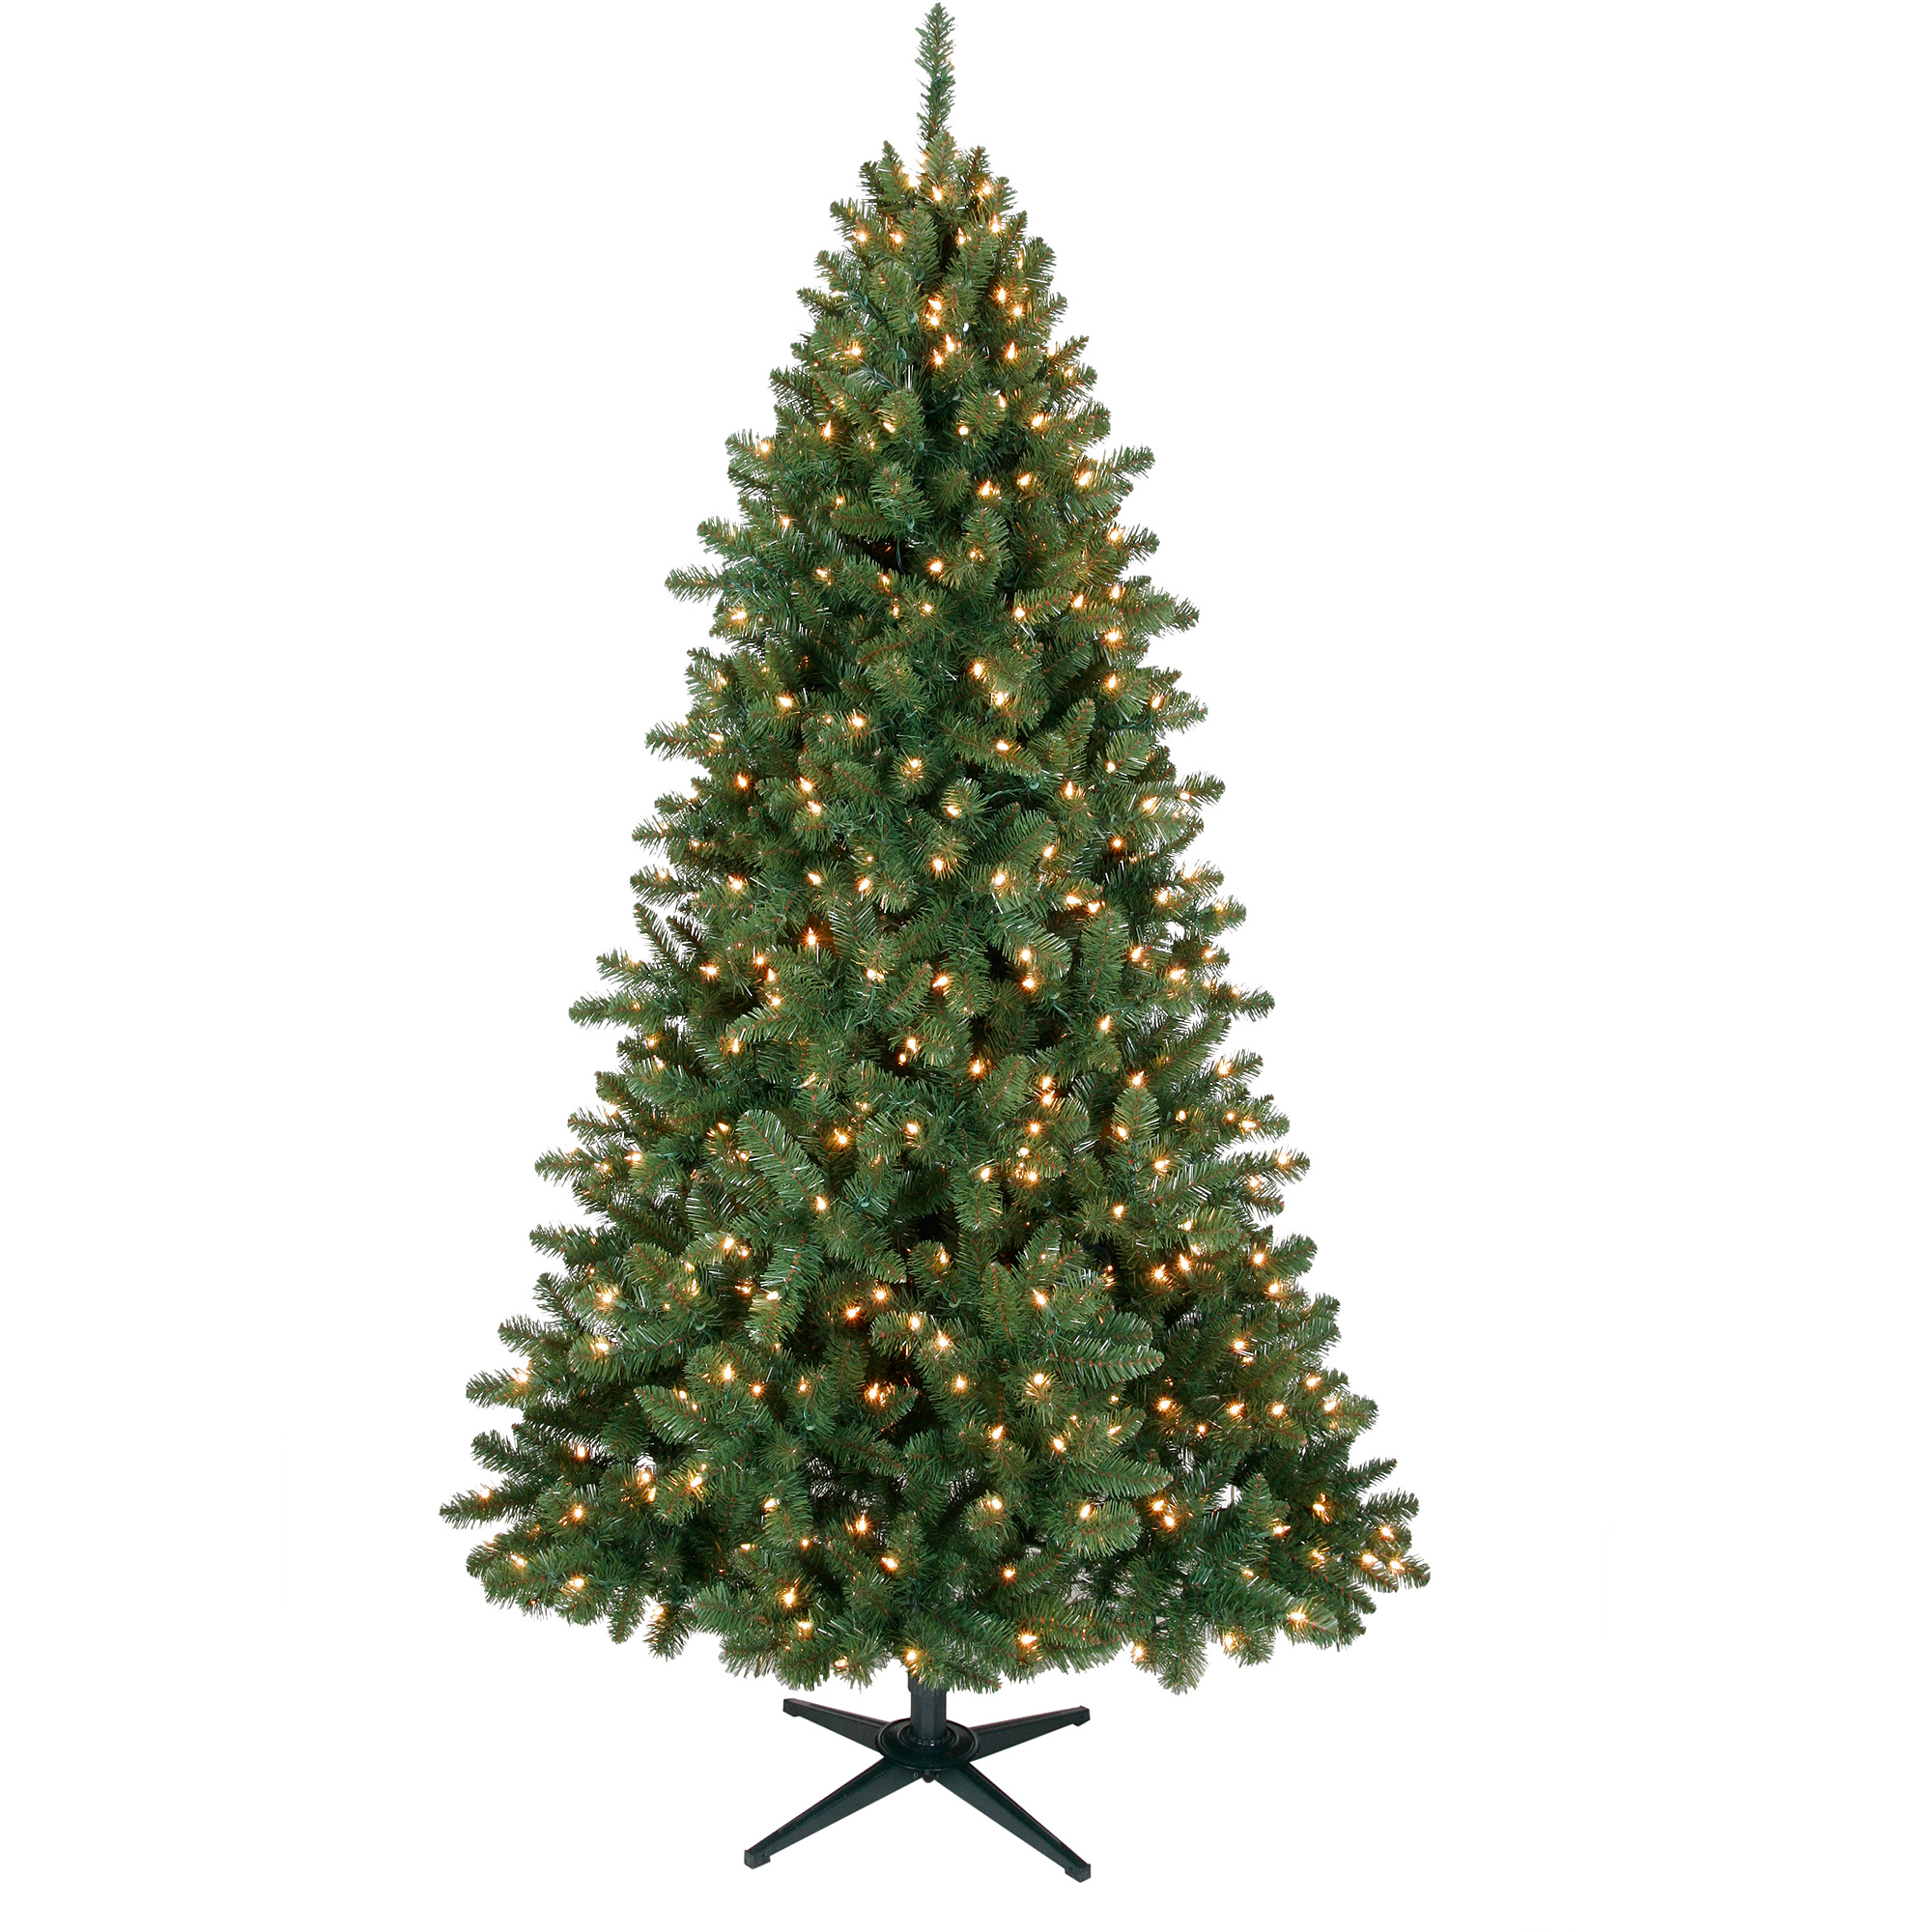 Www.walmart Christmas Trees Part - 41: Holiday Time Pre-Lit 7u0027 Duncan Christmas Tree, Green, Clear Lights - Walmart .com